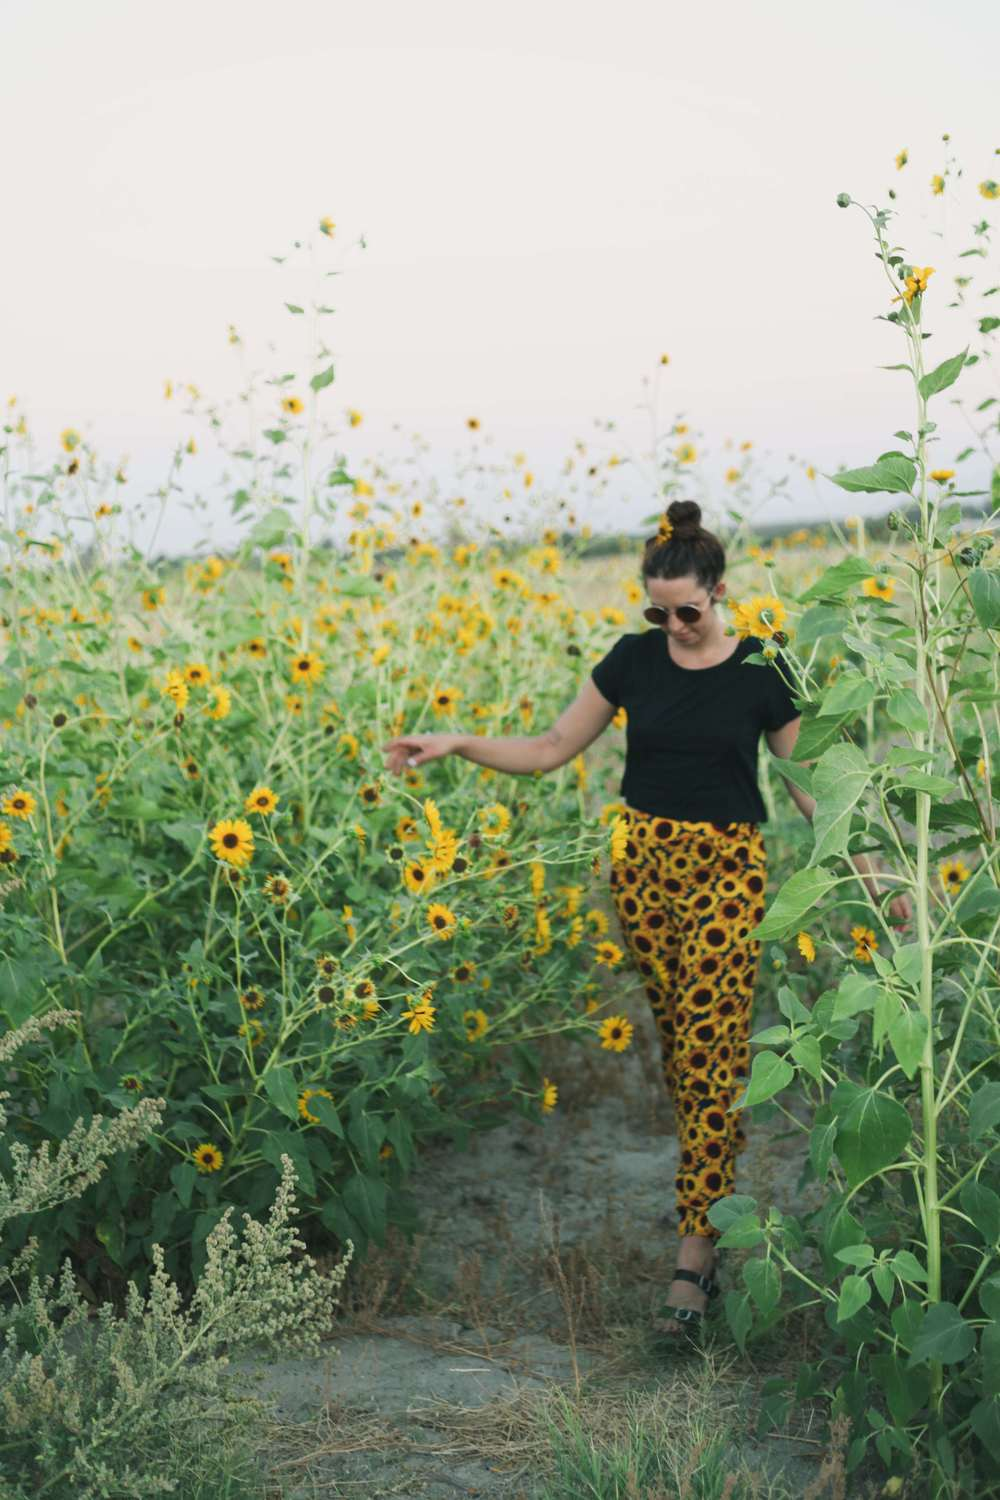 summer_desert_sunflowers_style_fashion_treasuresandtravels-22.jpg